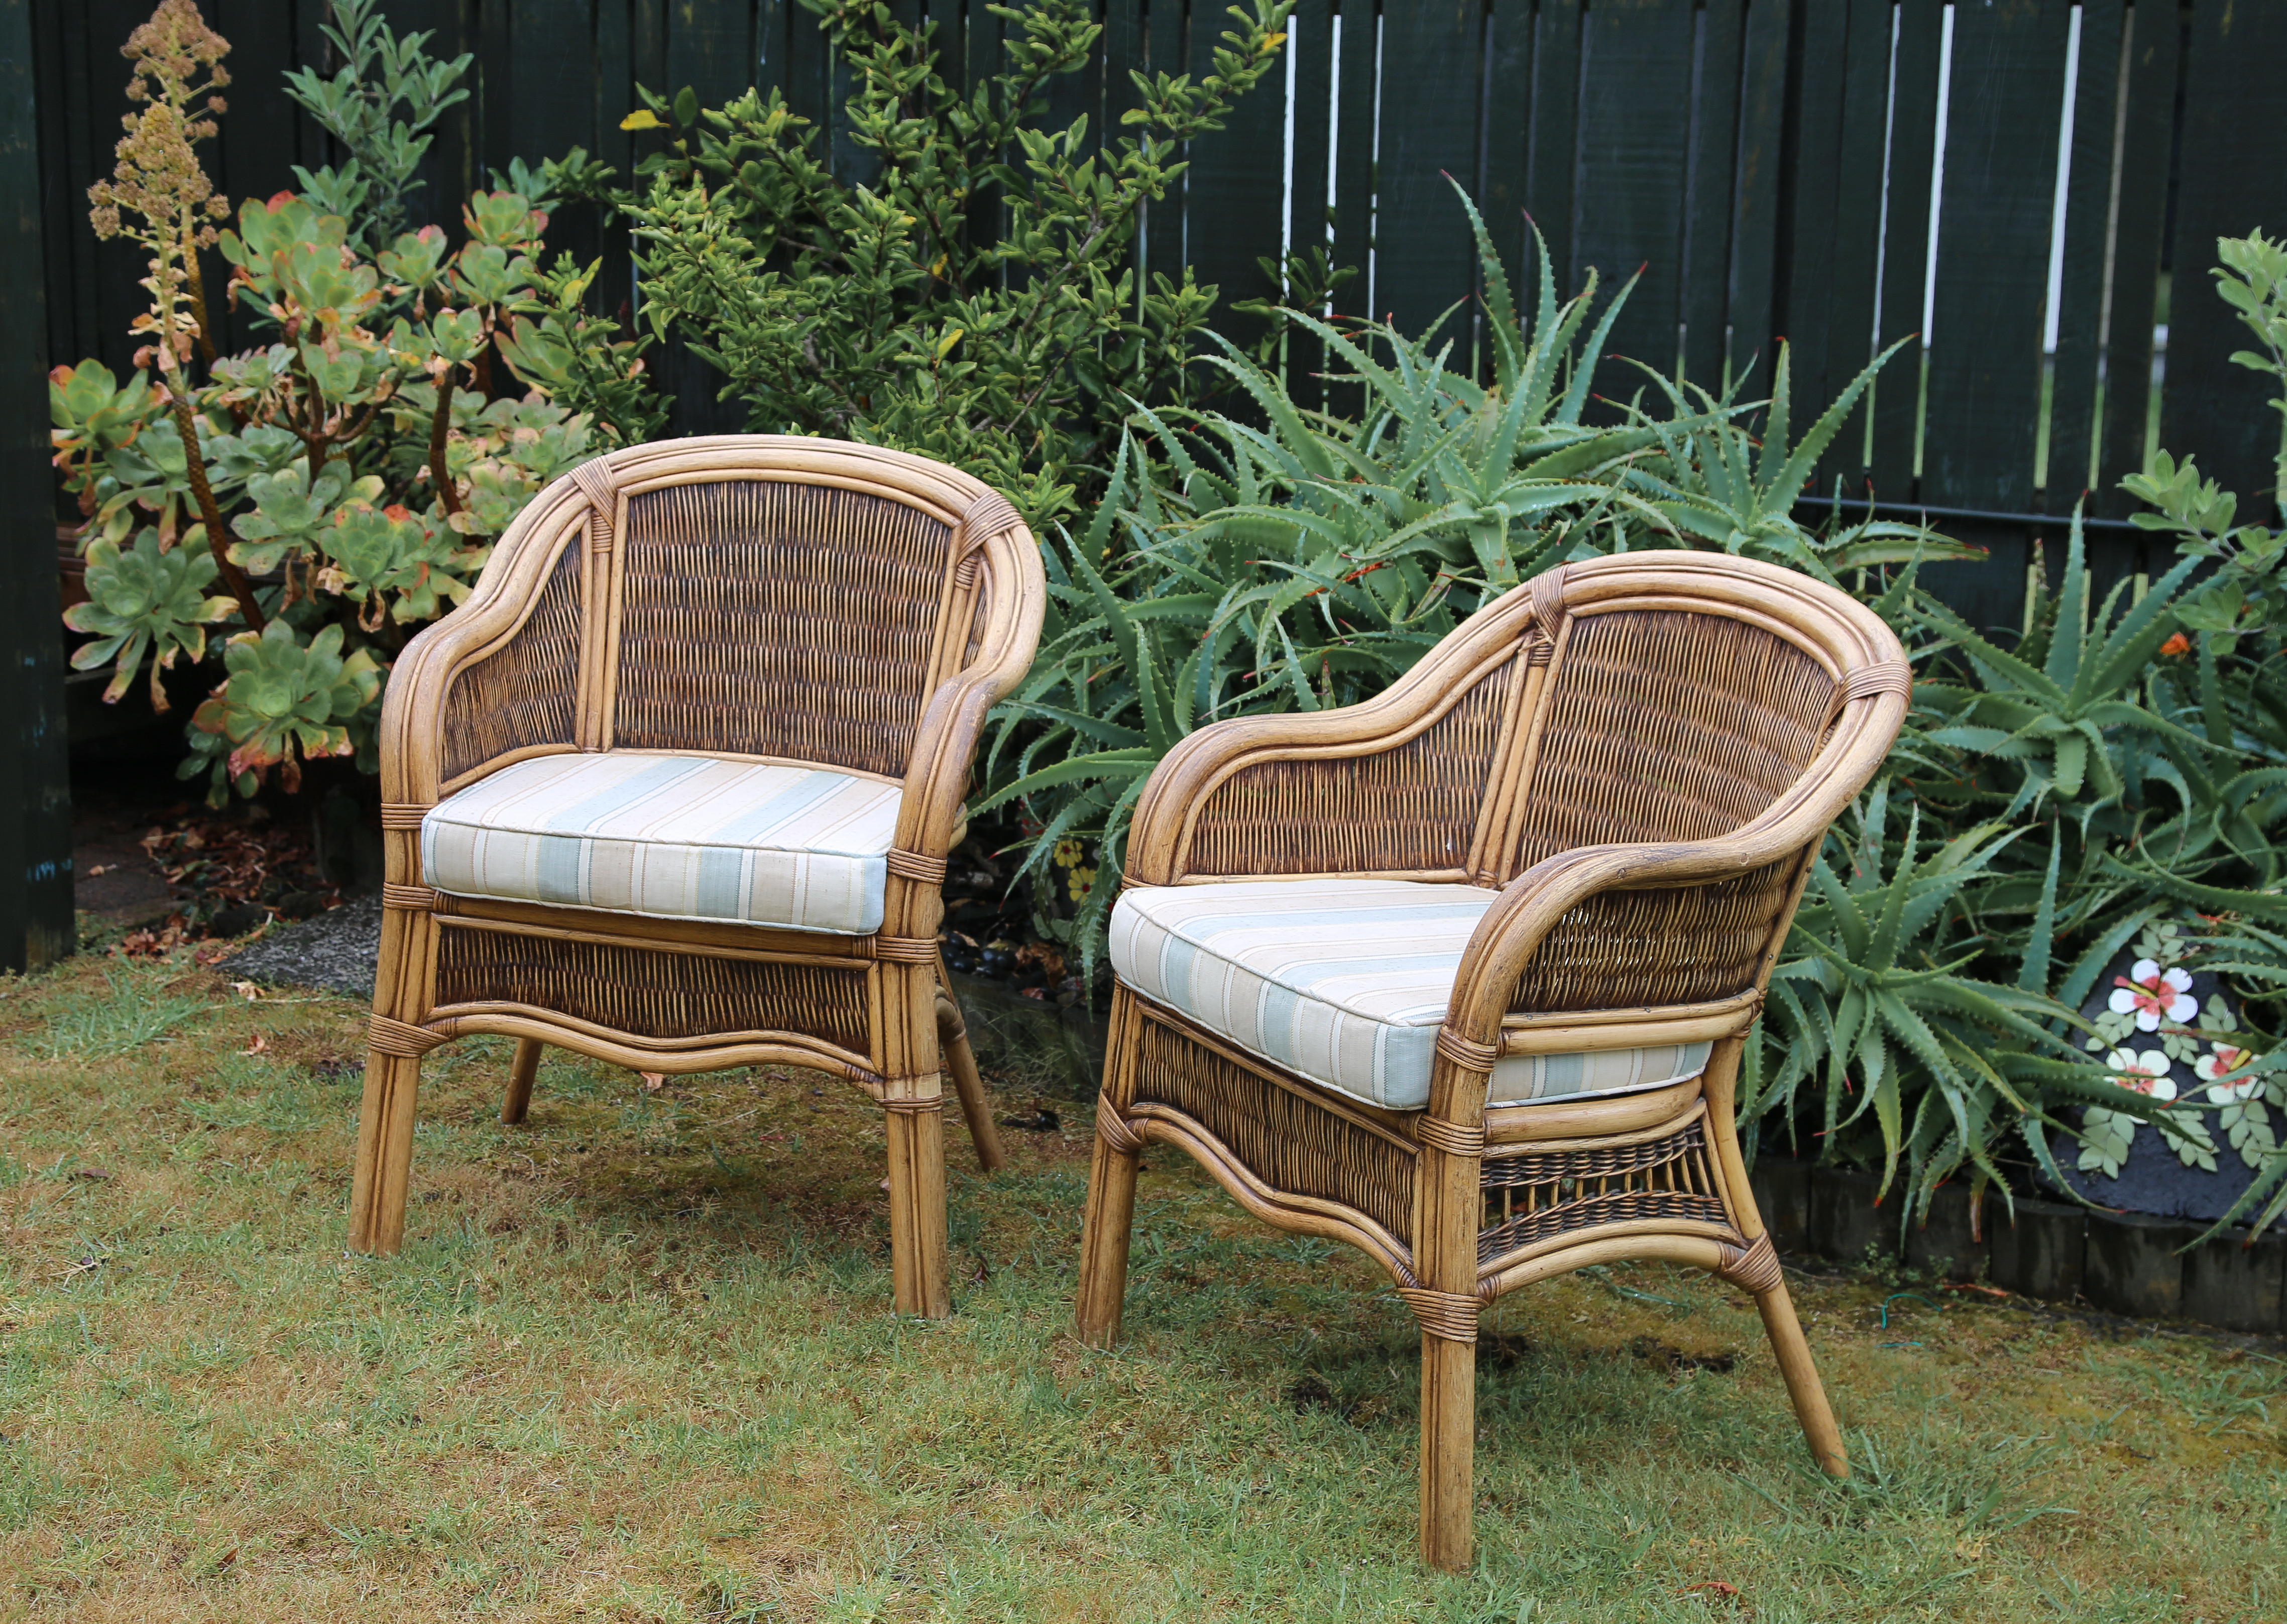 Cane chairs